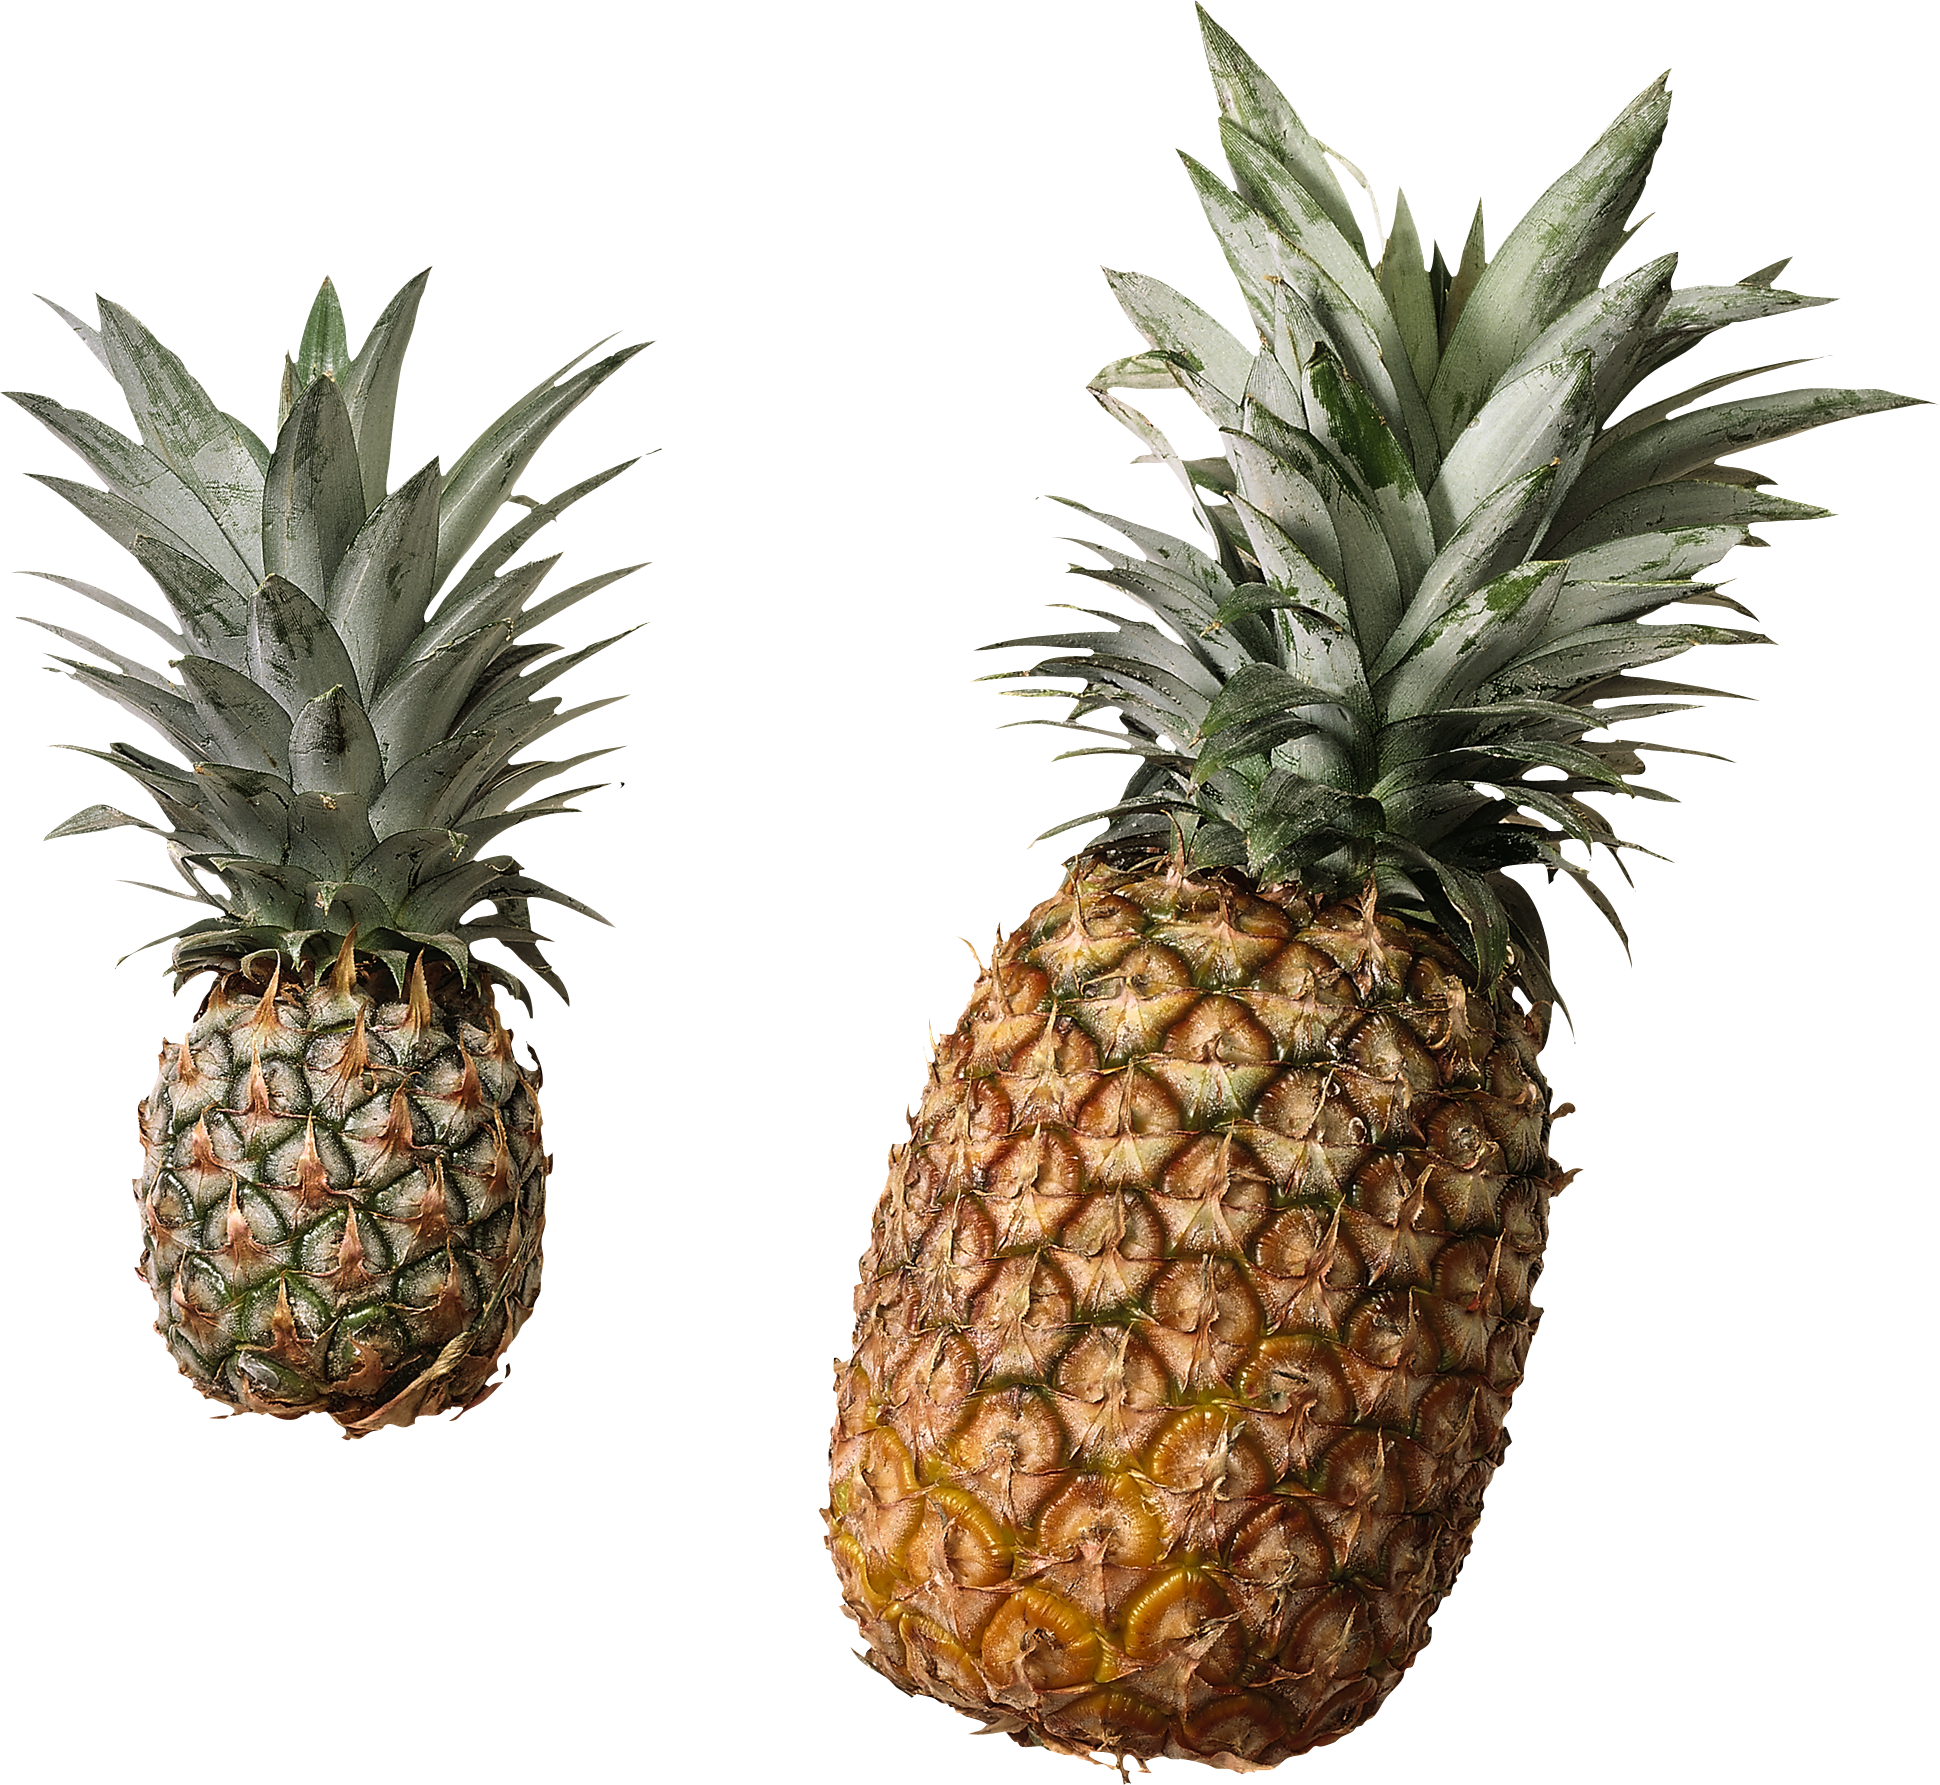 Apple clipart jpeg no background transparent stock Pinapples PNG Image - PurePNG | Free transparent CC0 PNG Image Library transparent stock